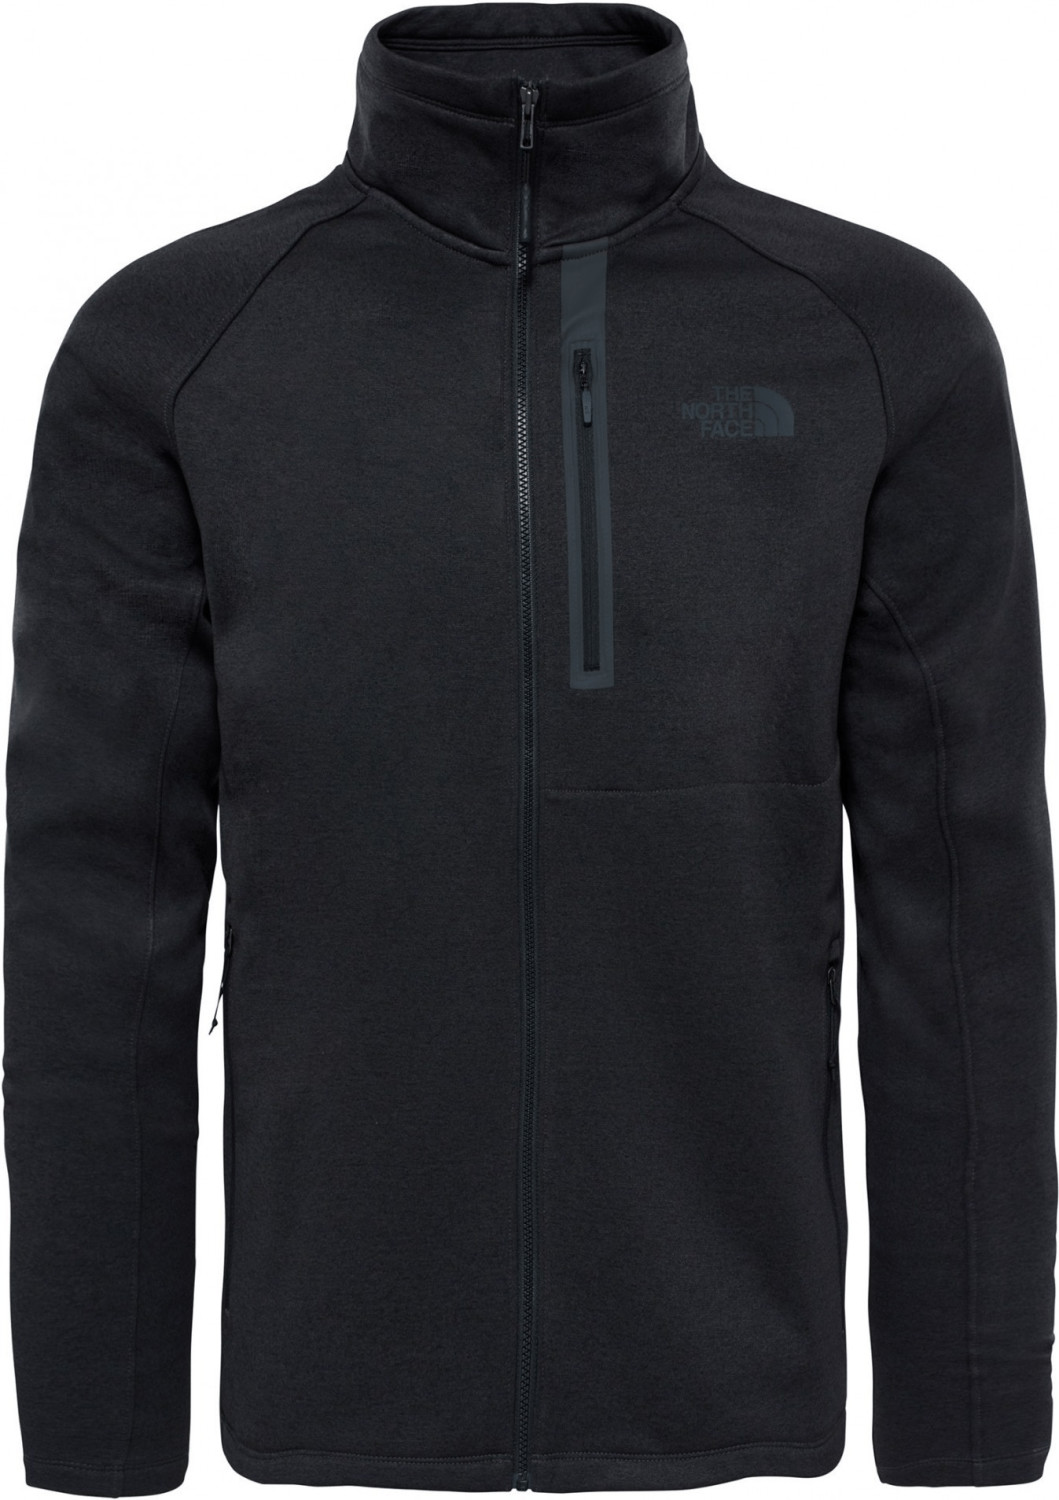 Zwarte heren hoody met rits The North Face Canyonlands FZ T92TXIJK3